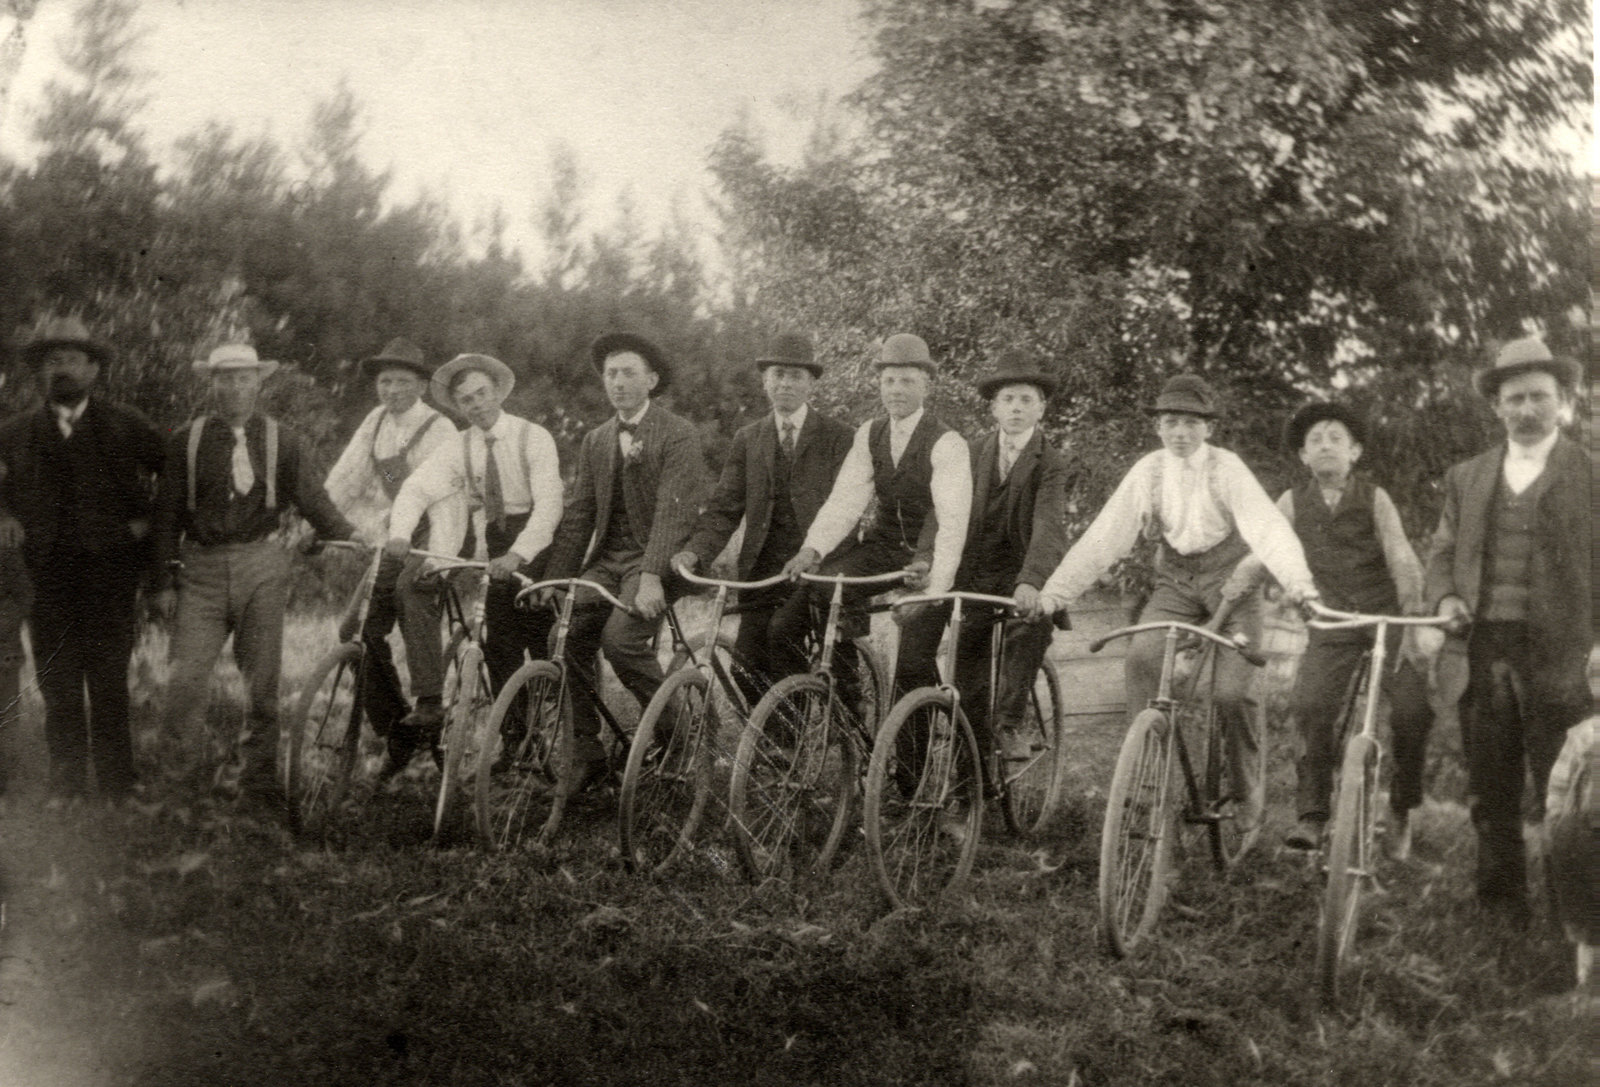 Bicycle club, Wilno, Minnesota, A men's bicycle club on the Anton Mazarek farm in Wilno, Minnesota, 1908. L to R: Sylvester Mazarek; Joseph Bukowski; Anton Otto; Joseph Lasnetski; John Guza; Vincent Panek; William Guza; Michael Guza; Adam Guza; Stanley Lasnetski; Harry Mazarek; Anton Mazarek; Andrew Mazarek. Several of the young men belonged to St. John Cantius Church, 1908, In Copyright